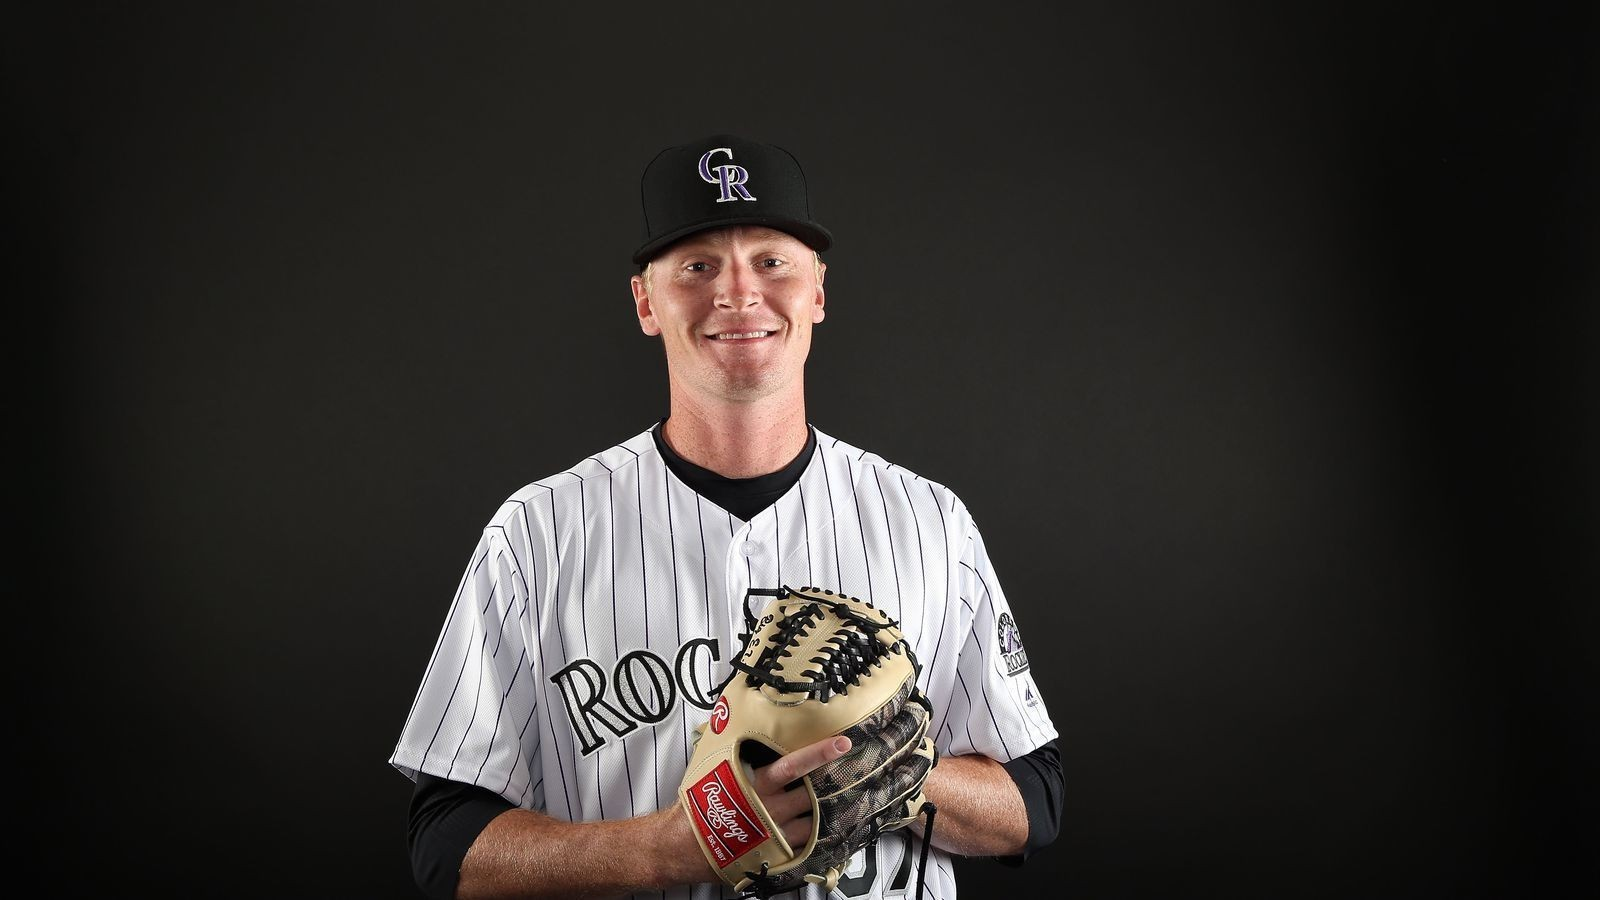 Colorado Rockies prospect Sam Howard powers the Yard Goats to a weekend sweep